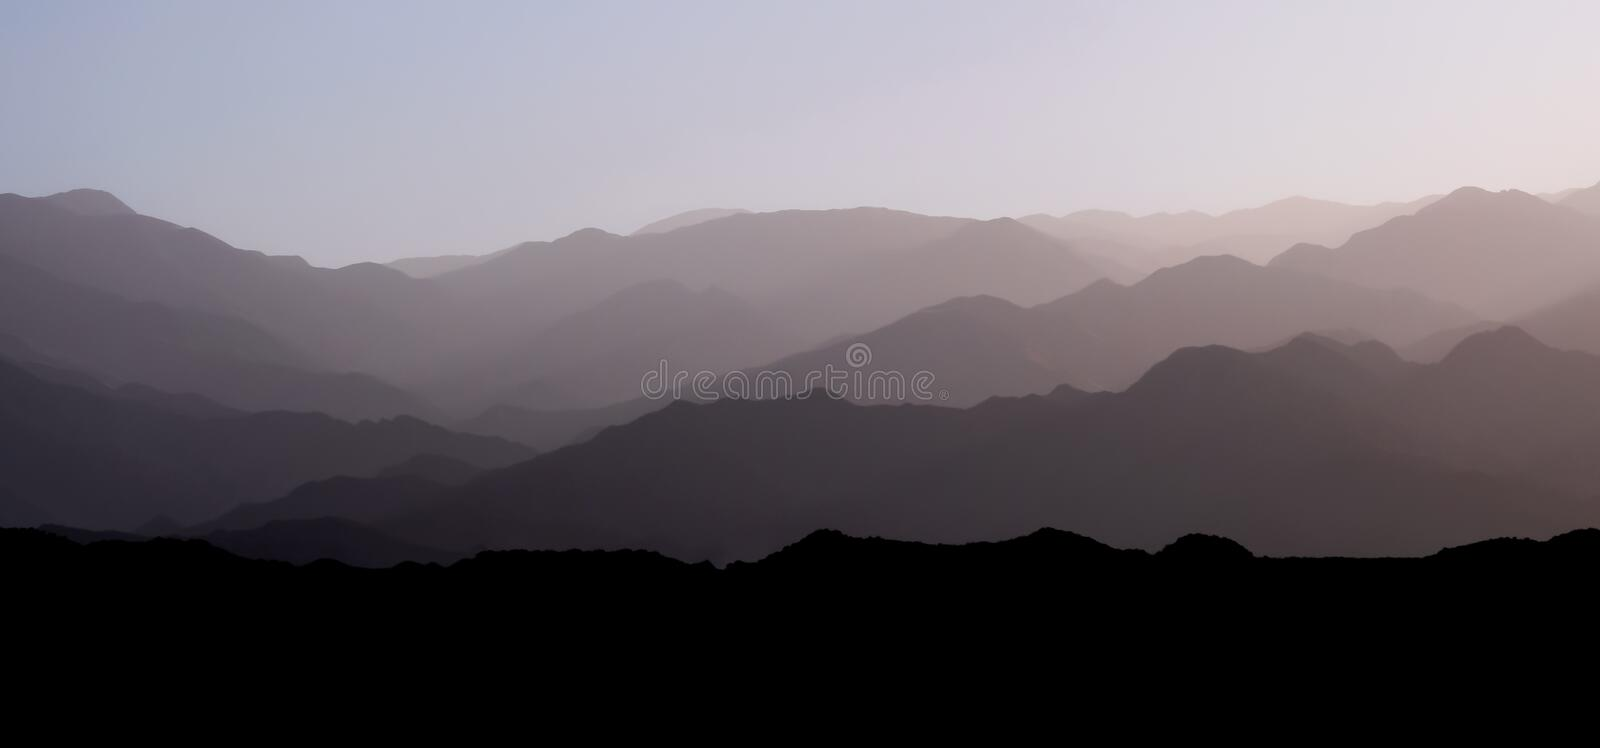 Mountain layers of the andean precordillera pre-mountain range and the cordillera at sunset, San Juan, Argentina stock images